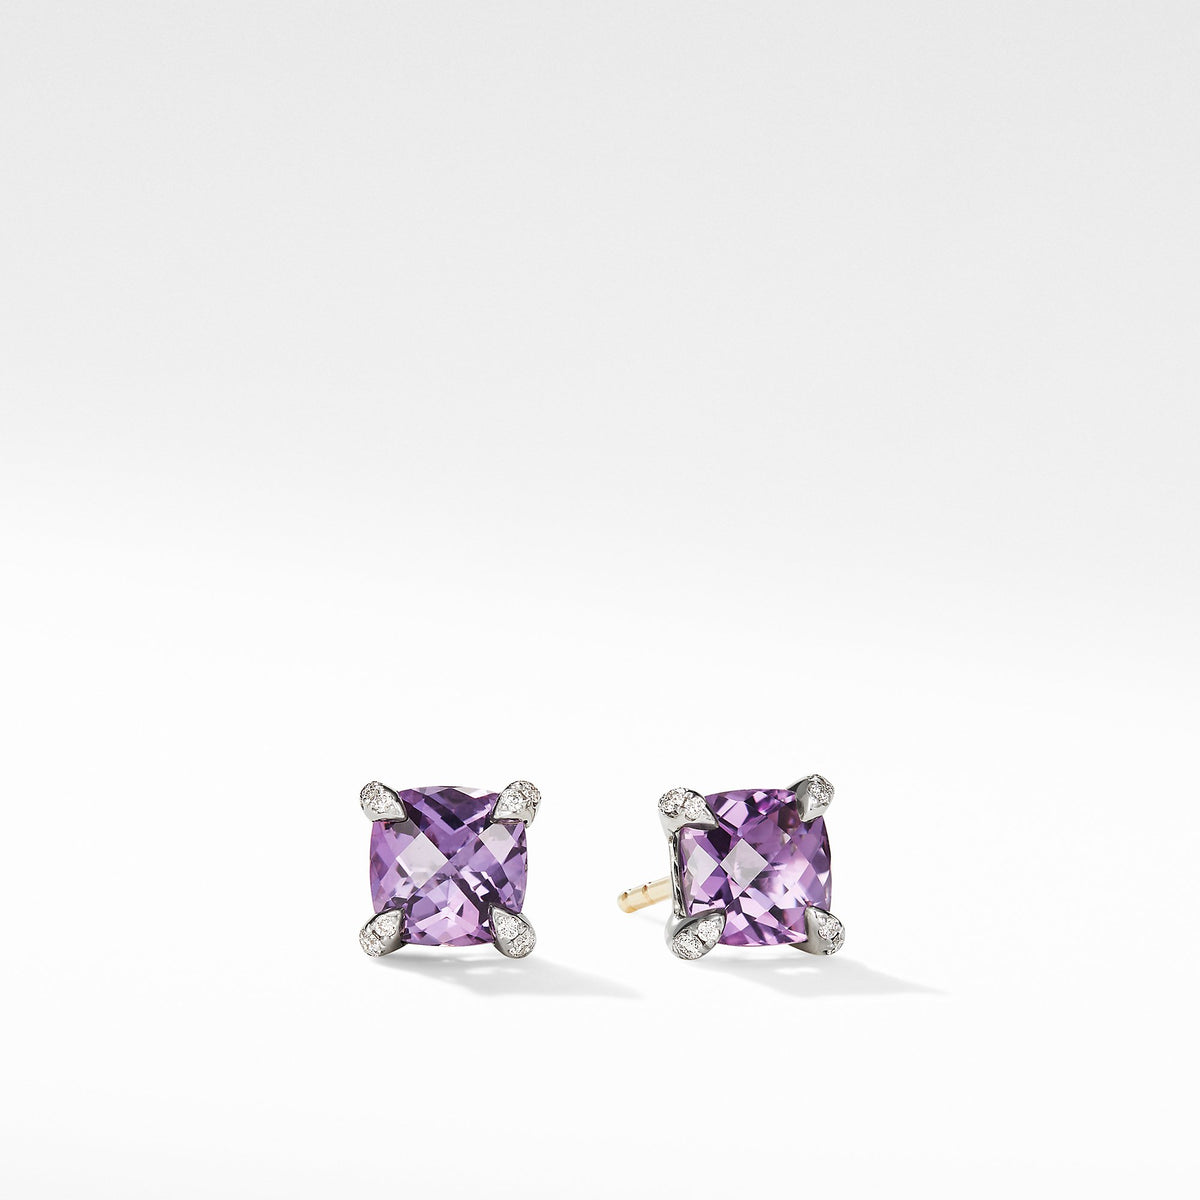 Chatelaine Stud Earrings with Amethyst and Diamonds